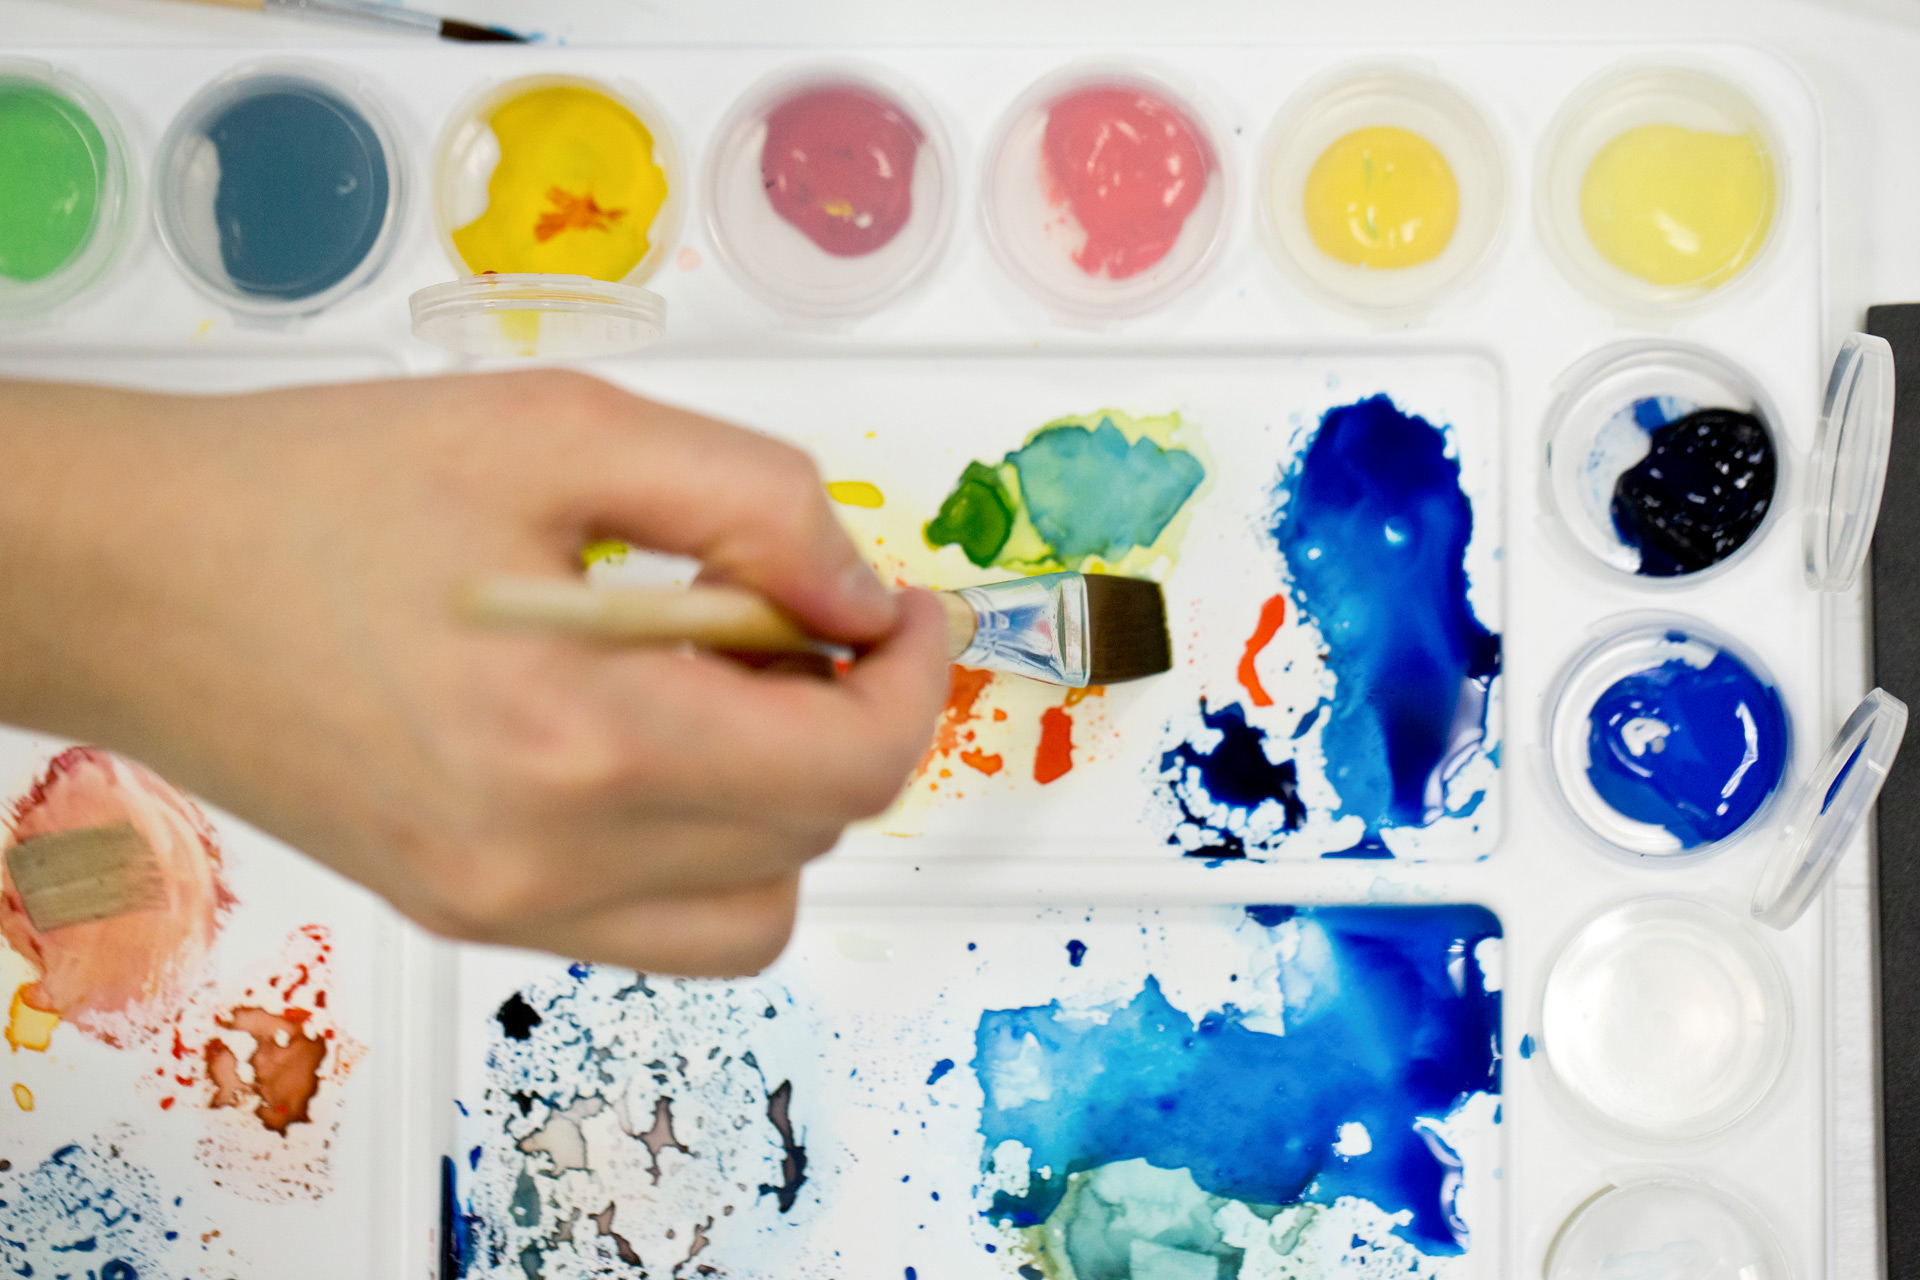 scad creative writing Arts, riding, writing or visual arts portfolios or to audition when possible to  enhance the application file and to be  and creative skills through the inclusion  of samples like observational sketches, cad  (scadslideroomcom) - files  should be.